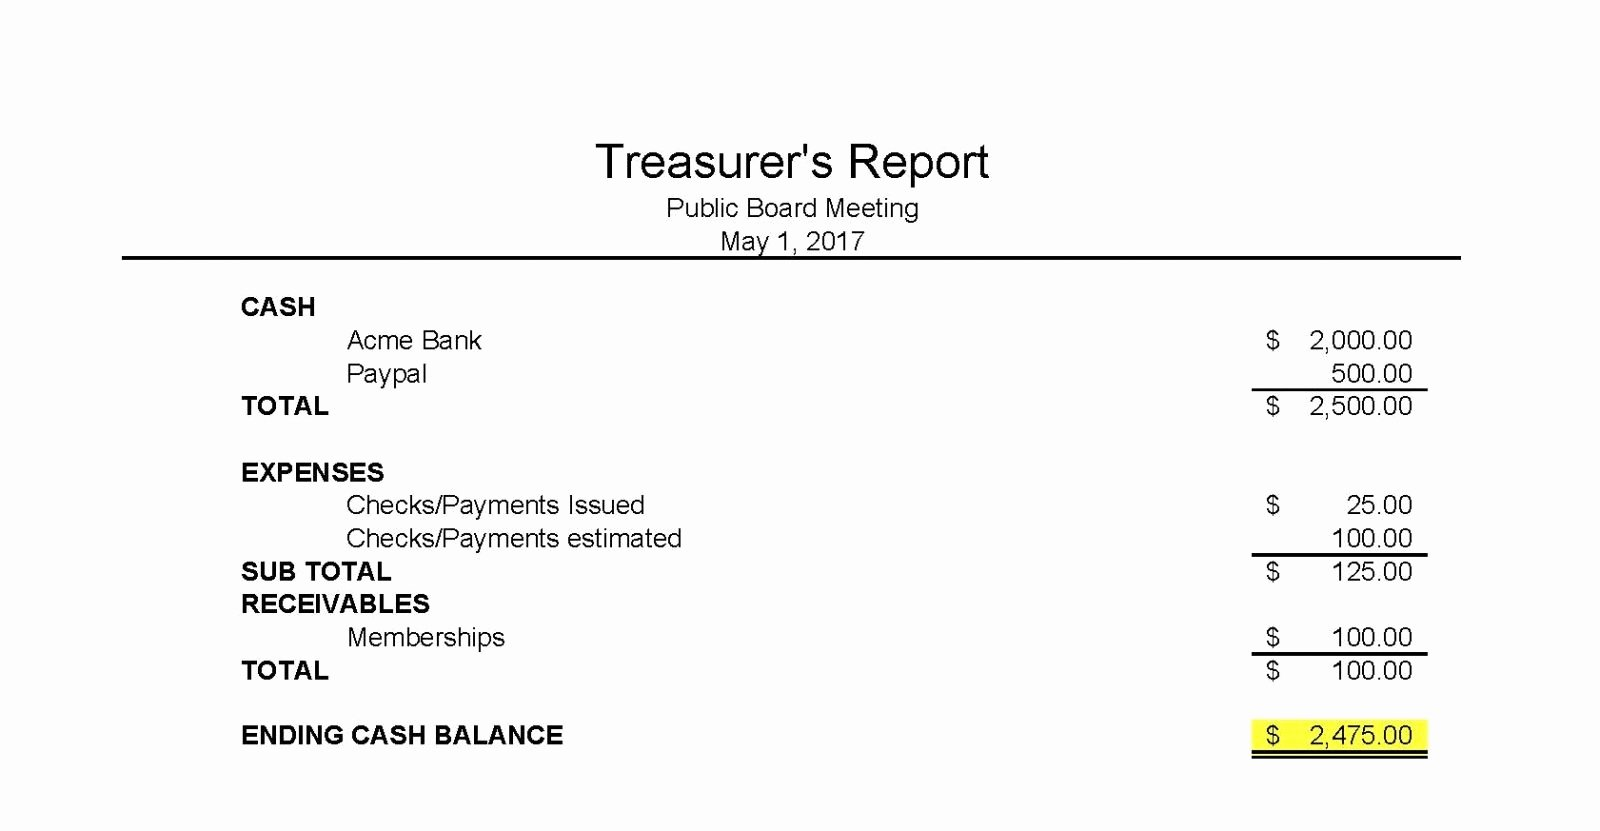 Treasurer Report Template Excel Elegant Treasurers Report Templateasurer Essential Print S Maggi